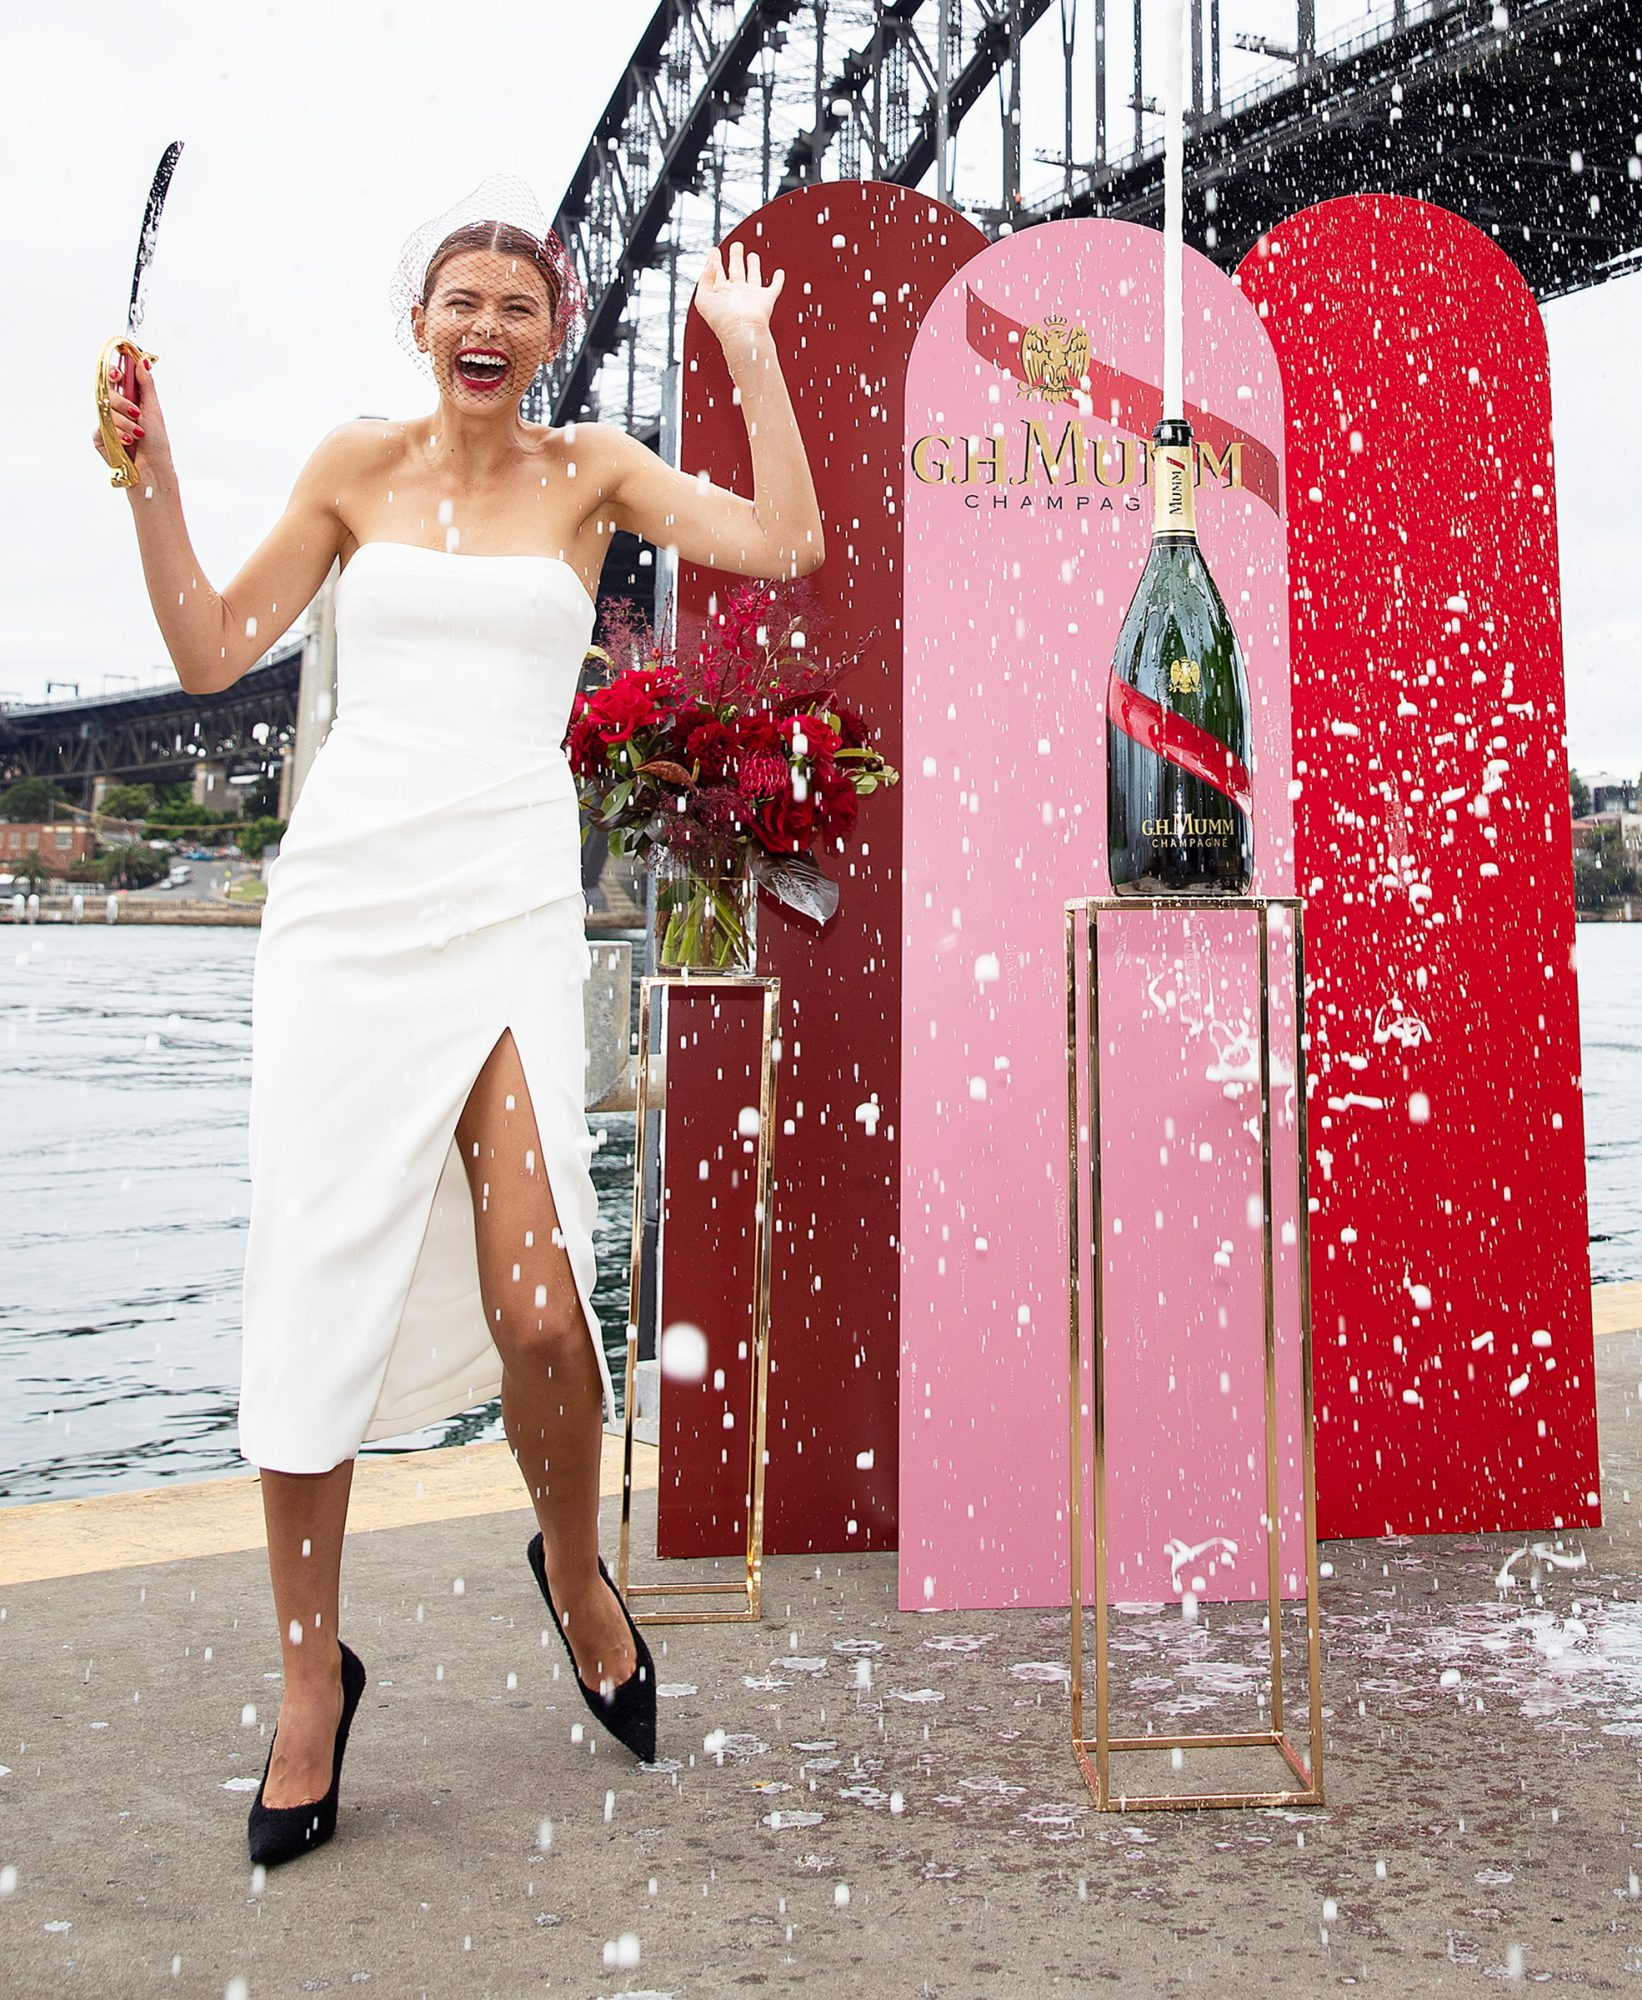 Georgia Fowler performs a 'tap tap' moment on a bottle of G.H. Mumm during the launch of G.H. Mumm Melbourne Cup Carnival celebrations at Pier One Hotel on October 28, 2020